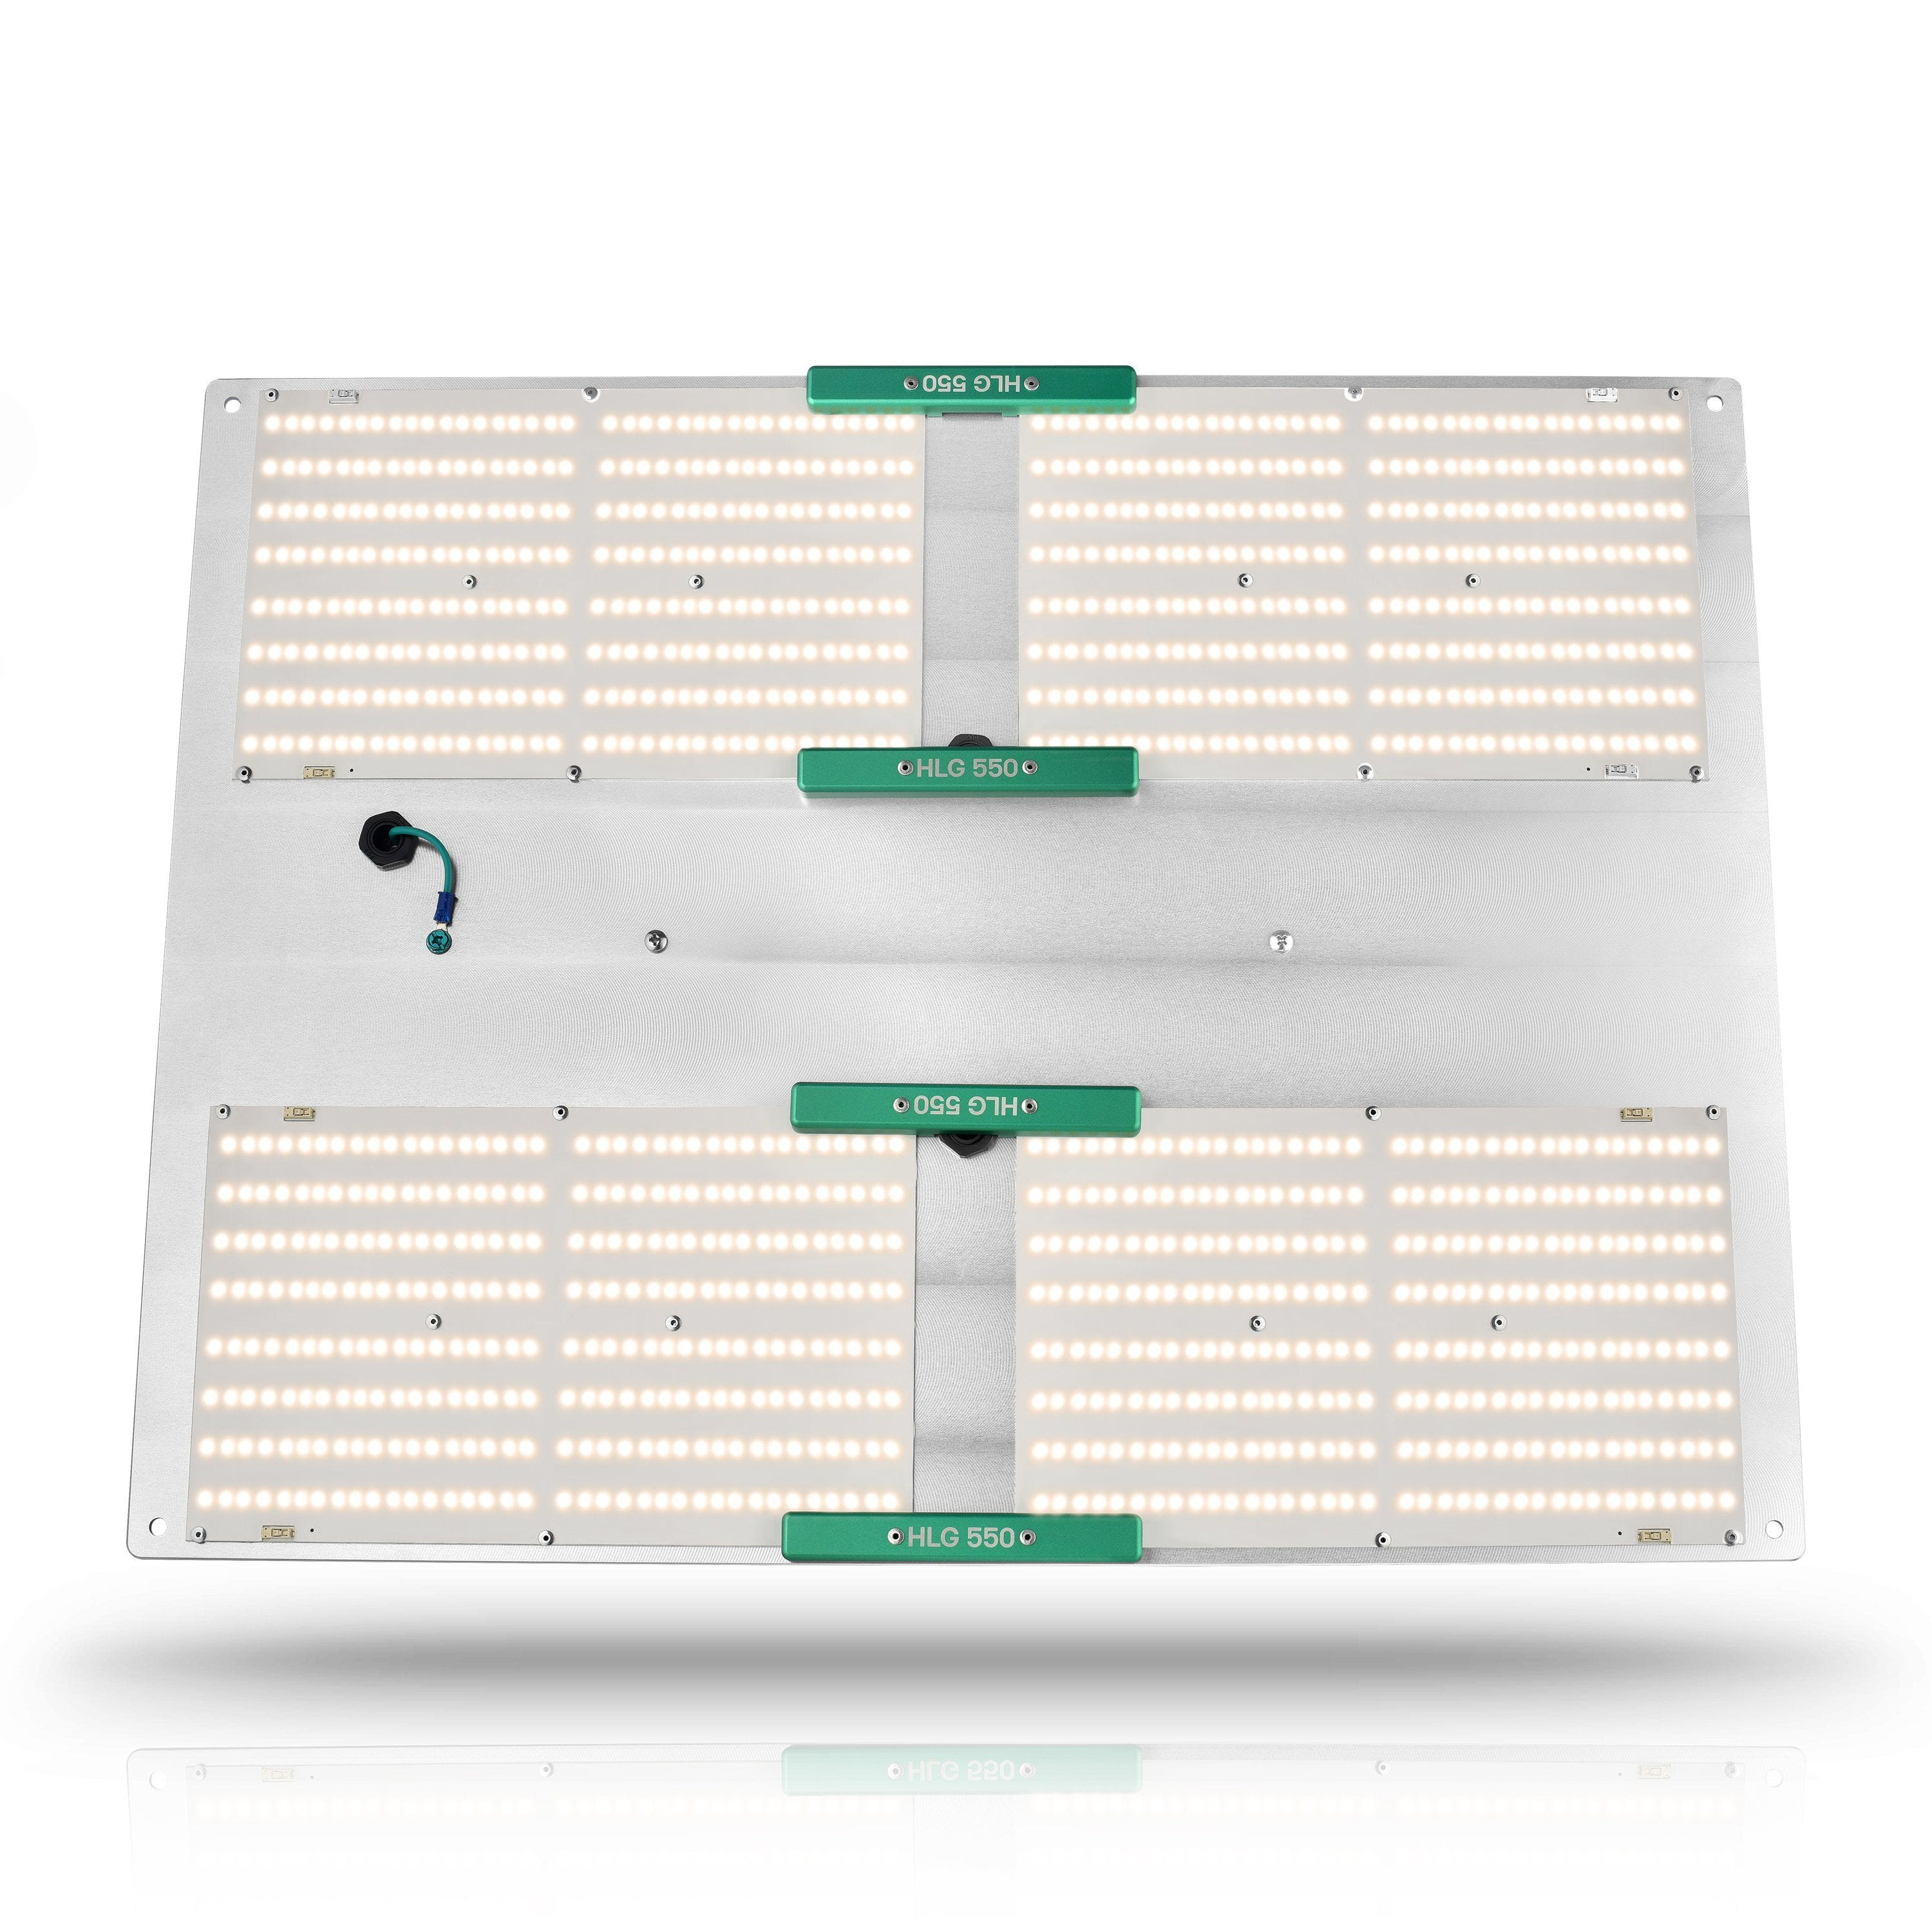 Horticulture Lighting Group HLG 550 V2 LED - 500W 4 Quantum Boards Horticulture Lighting Group 500W 4 Quantum Boards HLG 550 V2 - Ultra High Efficiency Horticulture Lighting Group's HLG550 V2 indoor horticulture LED Lamp is designed to replace a single ended 1000W HID. Each lamp uses 4 of our custom designed High efficiency white light Quantum Boards made by Samsung. 500 Watts with 1152 highest output Samsung LM301B LED. Comes in either 3000K (Flowering and Full Cycle) or 4000K (Veg only) spectrums. Top Features High efficiency white light Quantum Boards White Light Full Spectrum for better results Reliable passive cooled design Better canopy light penetration with diffused light Ideal for veg and bloom Dimmable Power Supply included 3 Year Warranty Specifications: Power250-500 Watts Voltage Range90-277 VAC LED1152 pcs Samsung 301B Flowering Footprint4.5'X4.5' or 4'X5' Veg Footprint6'X6' System Efficiency171 Lm/W System PPF Efficacy 2.5 μmol/joule Total output1178.05 PPF Dimensions26 X20 x3  Recommended Mounting Height 22-32 inches